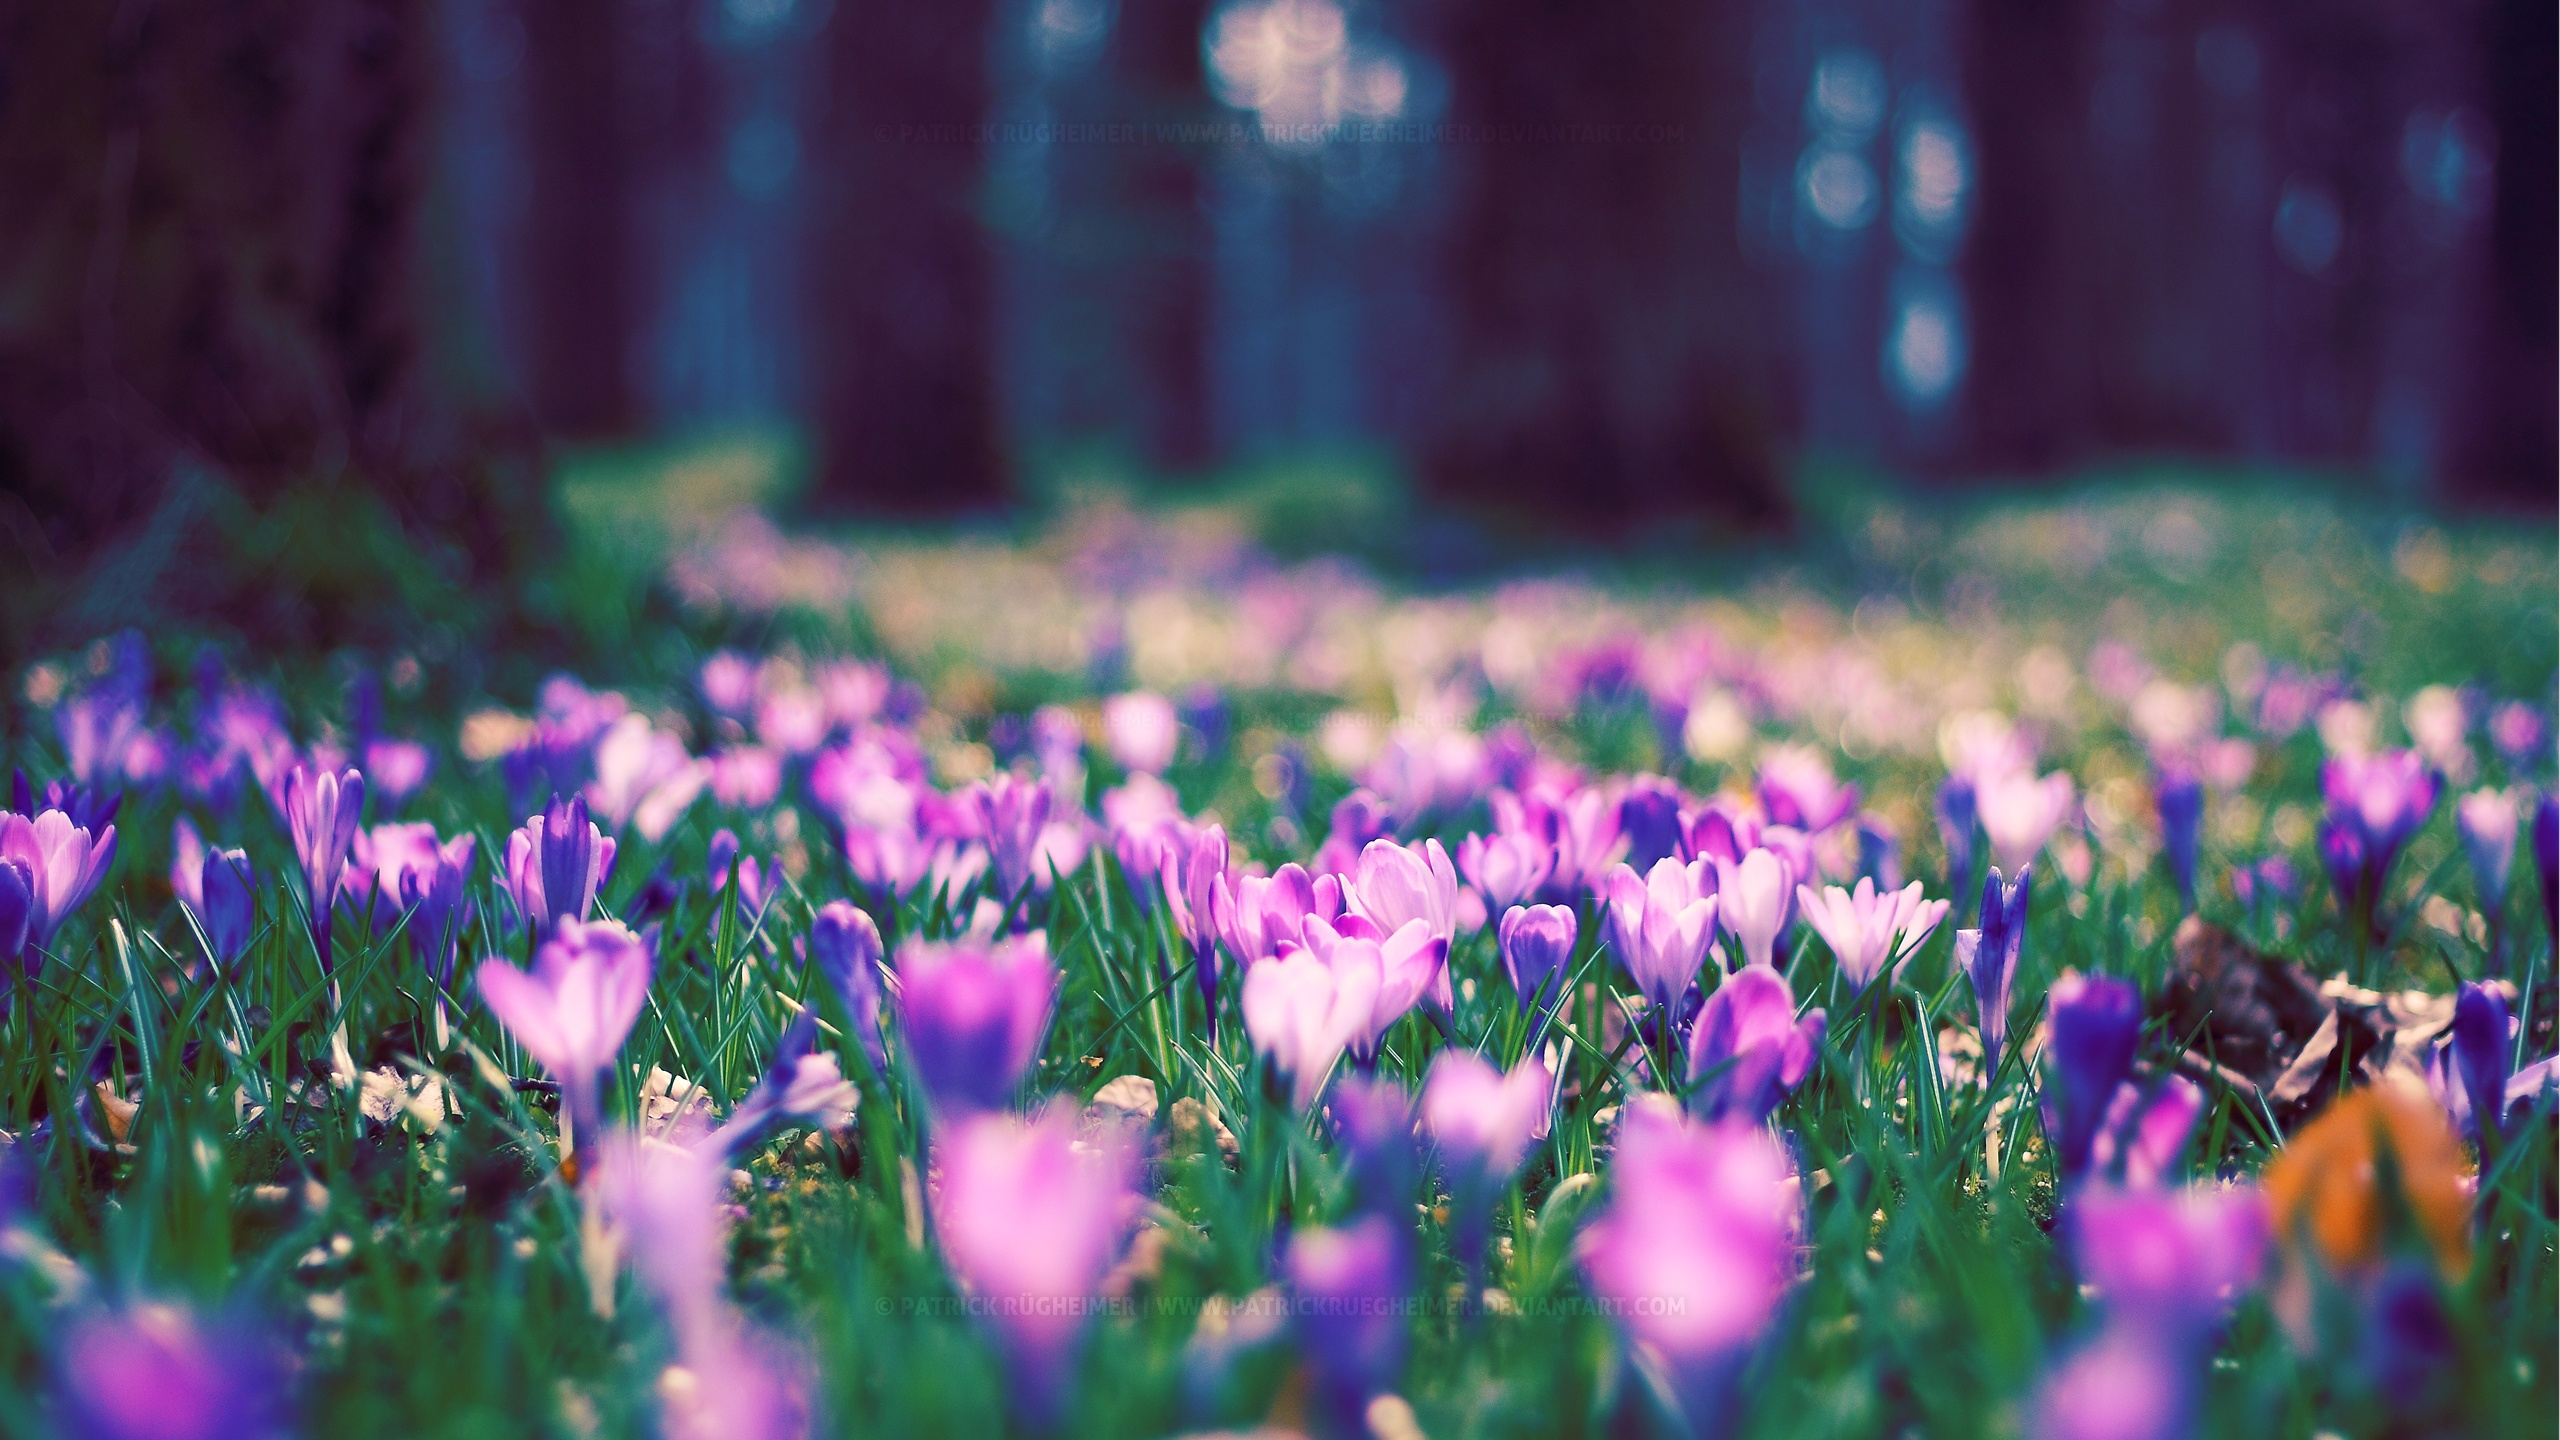 Spring Flowers Backgrounds Desktop  Wallpaper  2560x1440